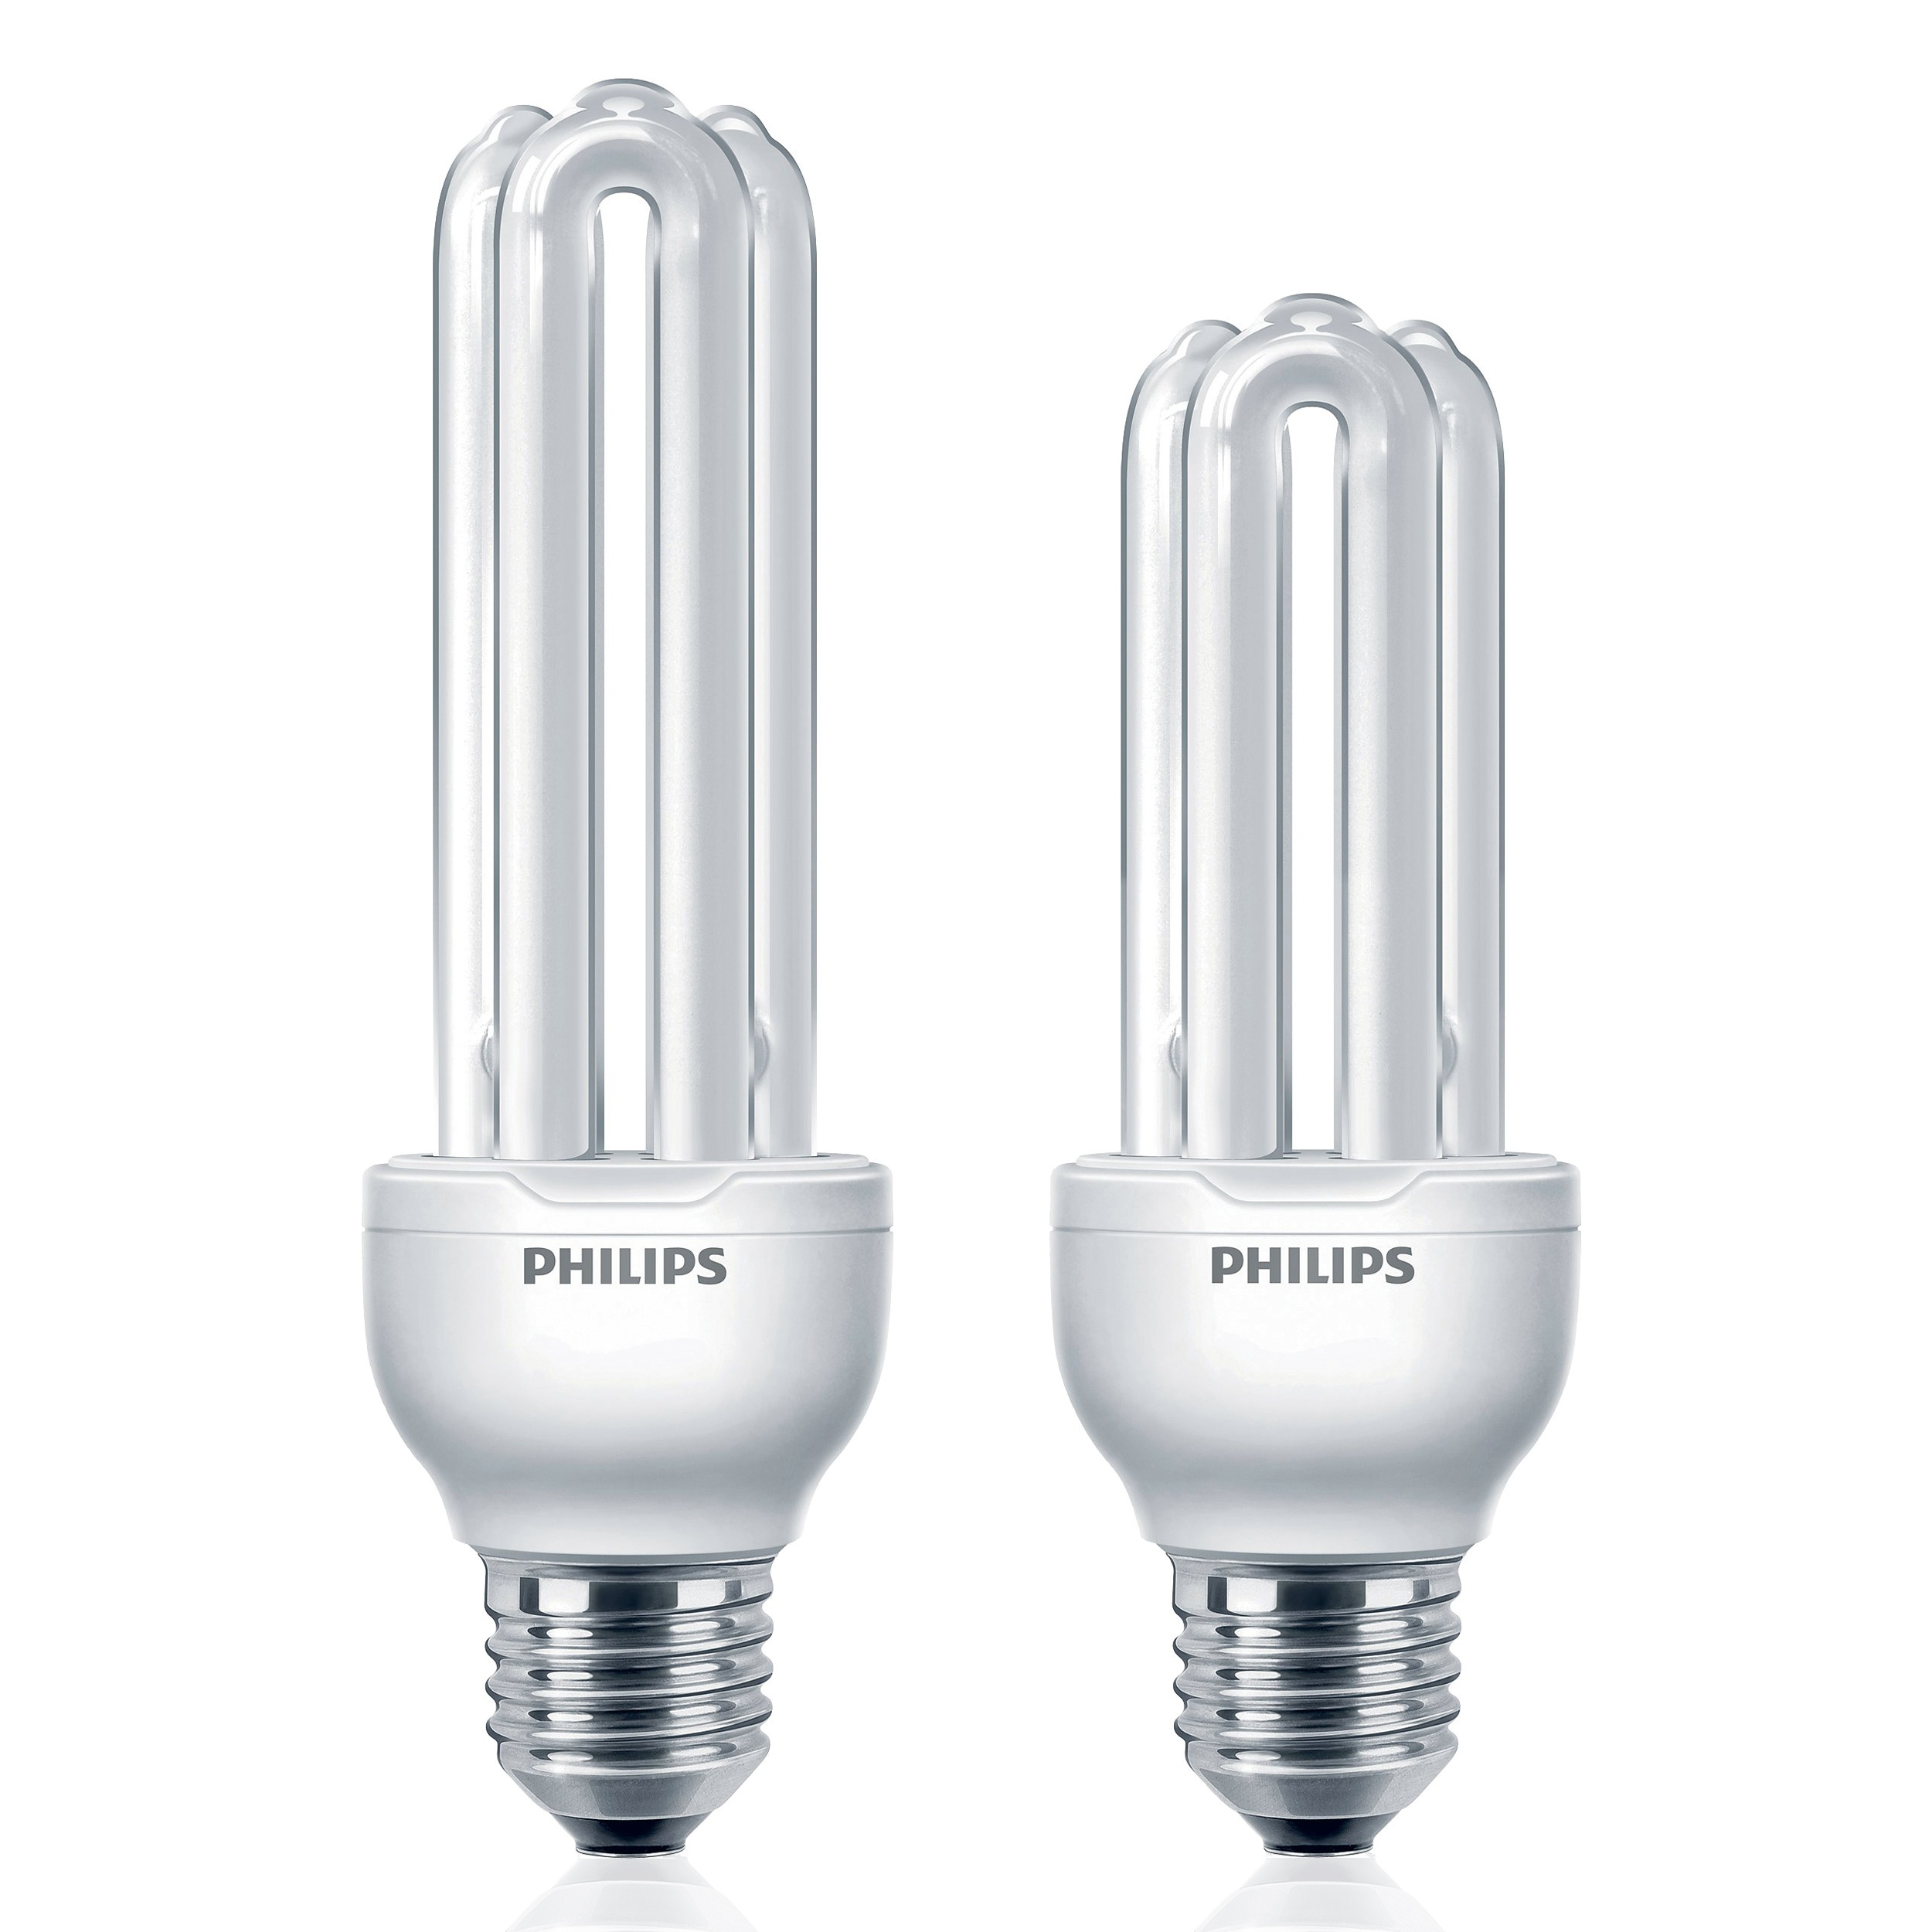 Philips 11w 23w Energy Saving Light Bulbs B22 E27 Fittings Warm White Cool Day